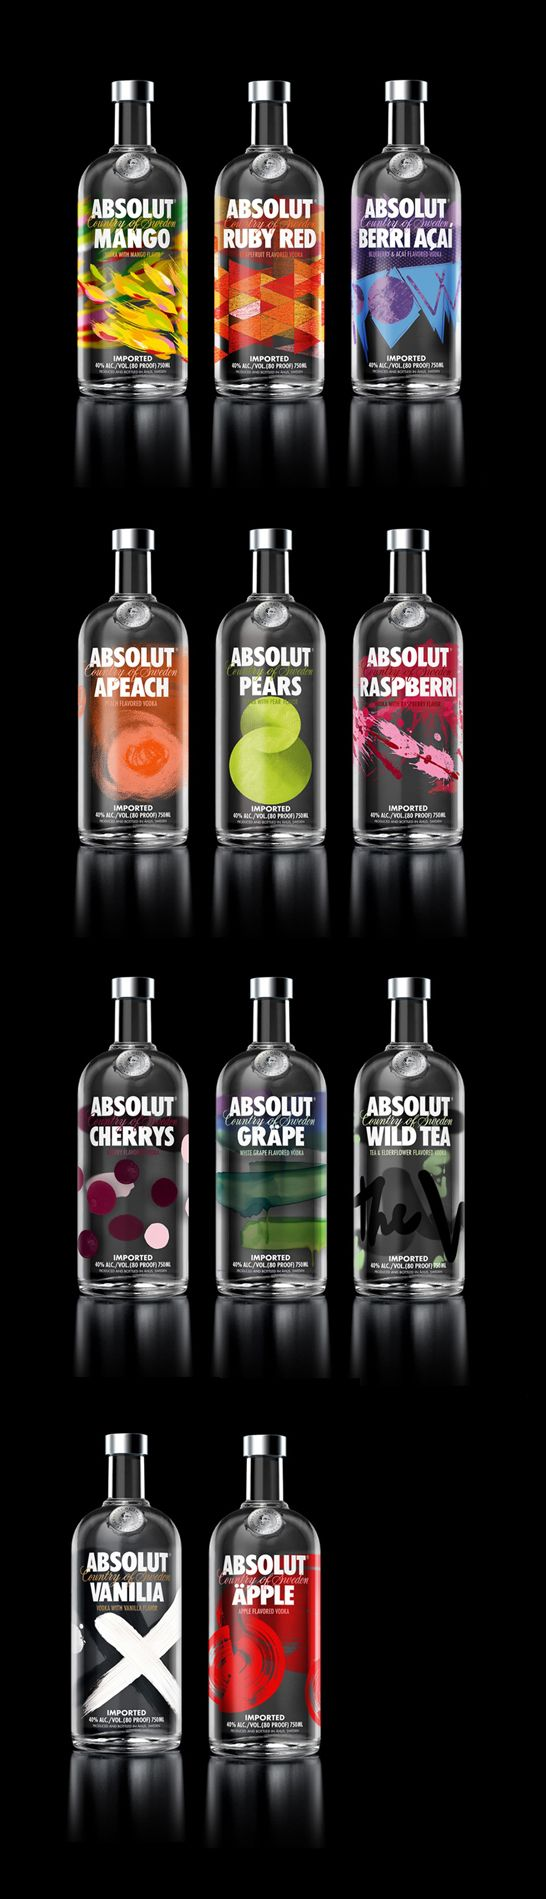 {Absolut} New Absolut Vodka designs - 2013 #Absolut #vodka  + Different Design for flavours